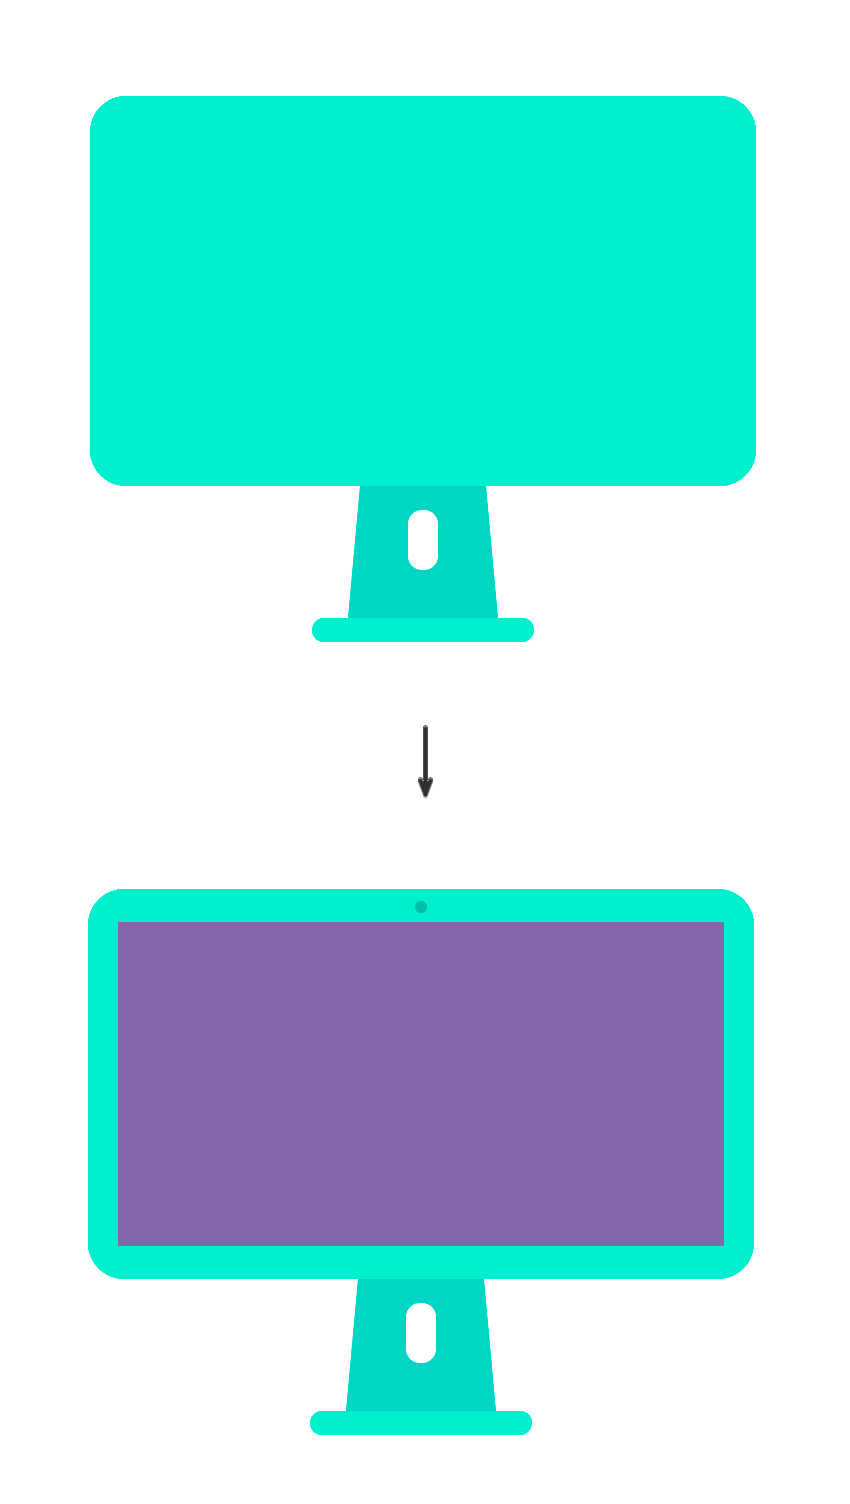 Twos rectangles for the monitor and the screen